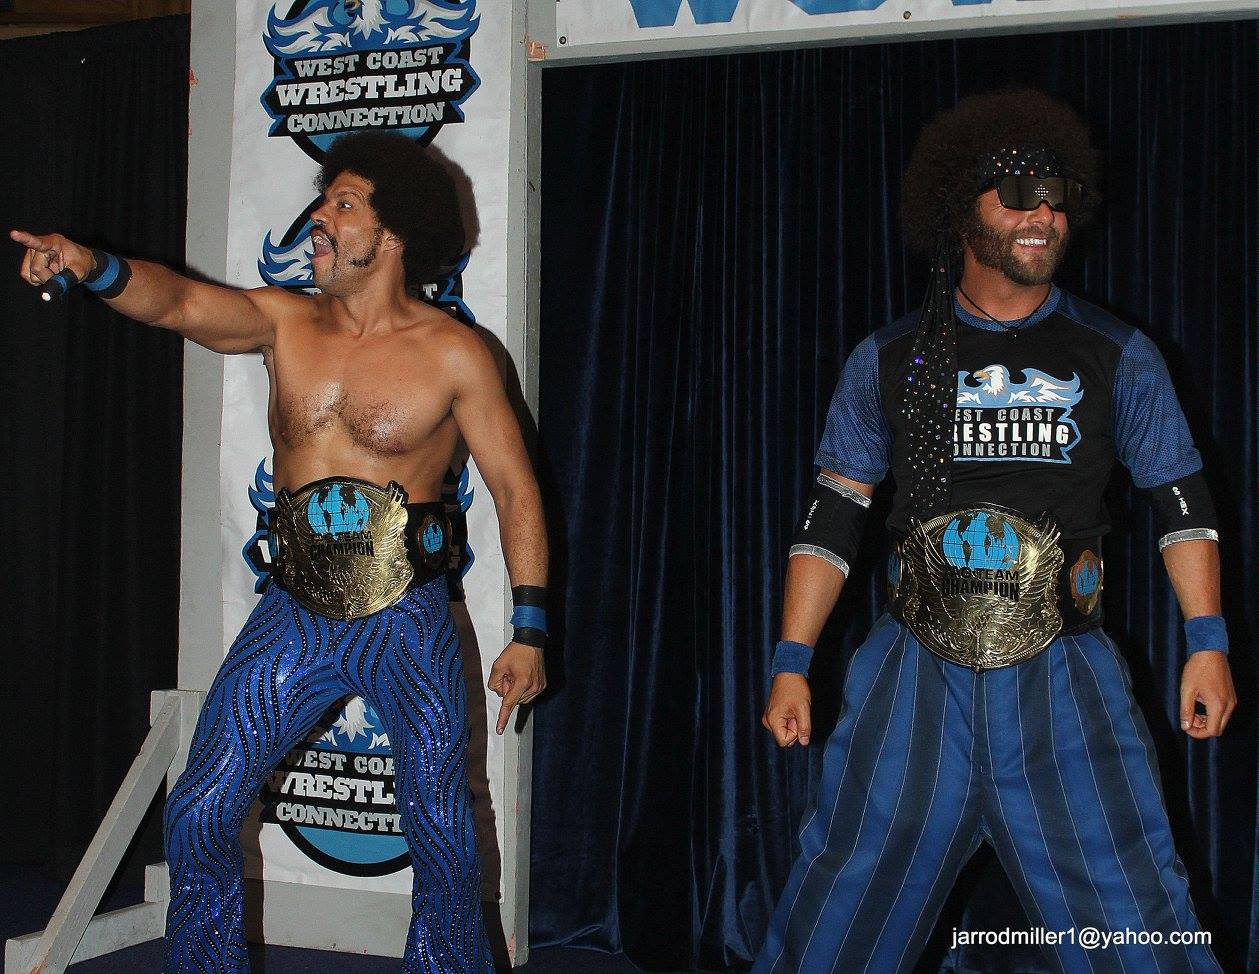 WCWC Oregon Tag Team Championship/Champion gallery